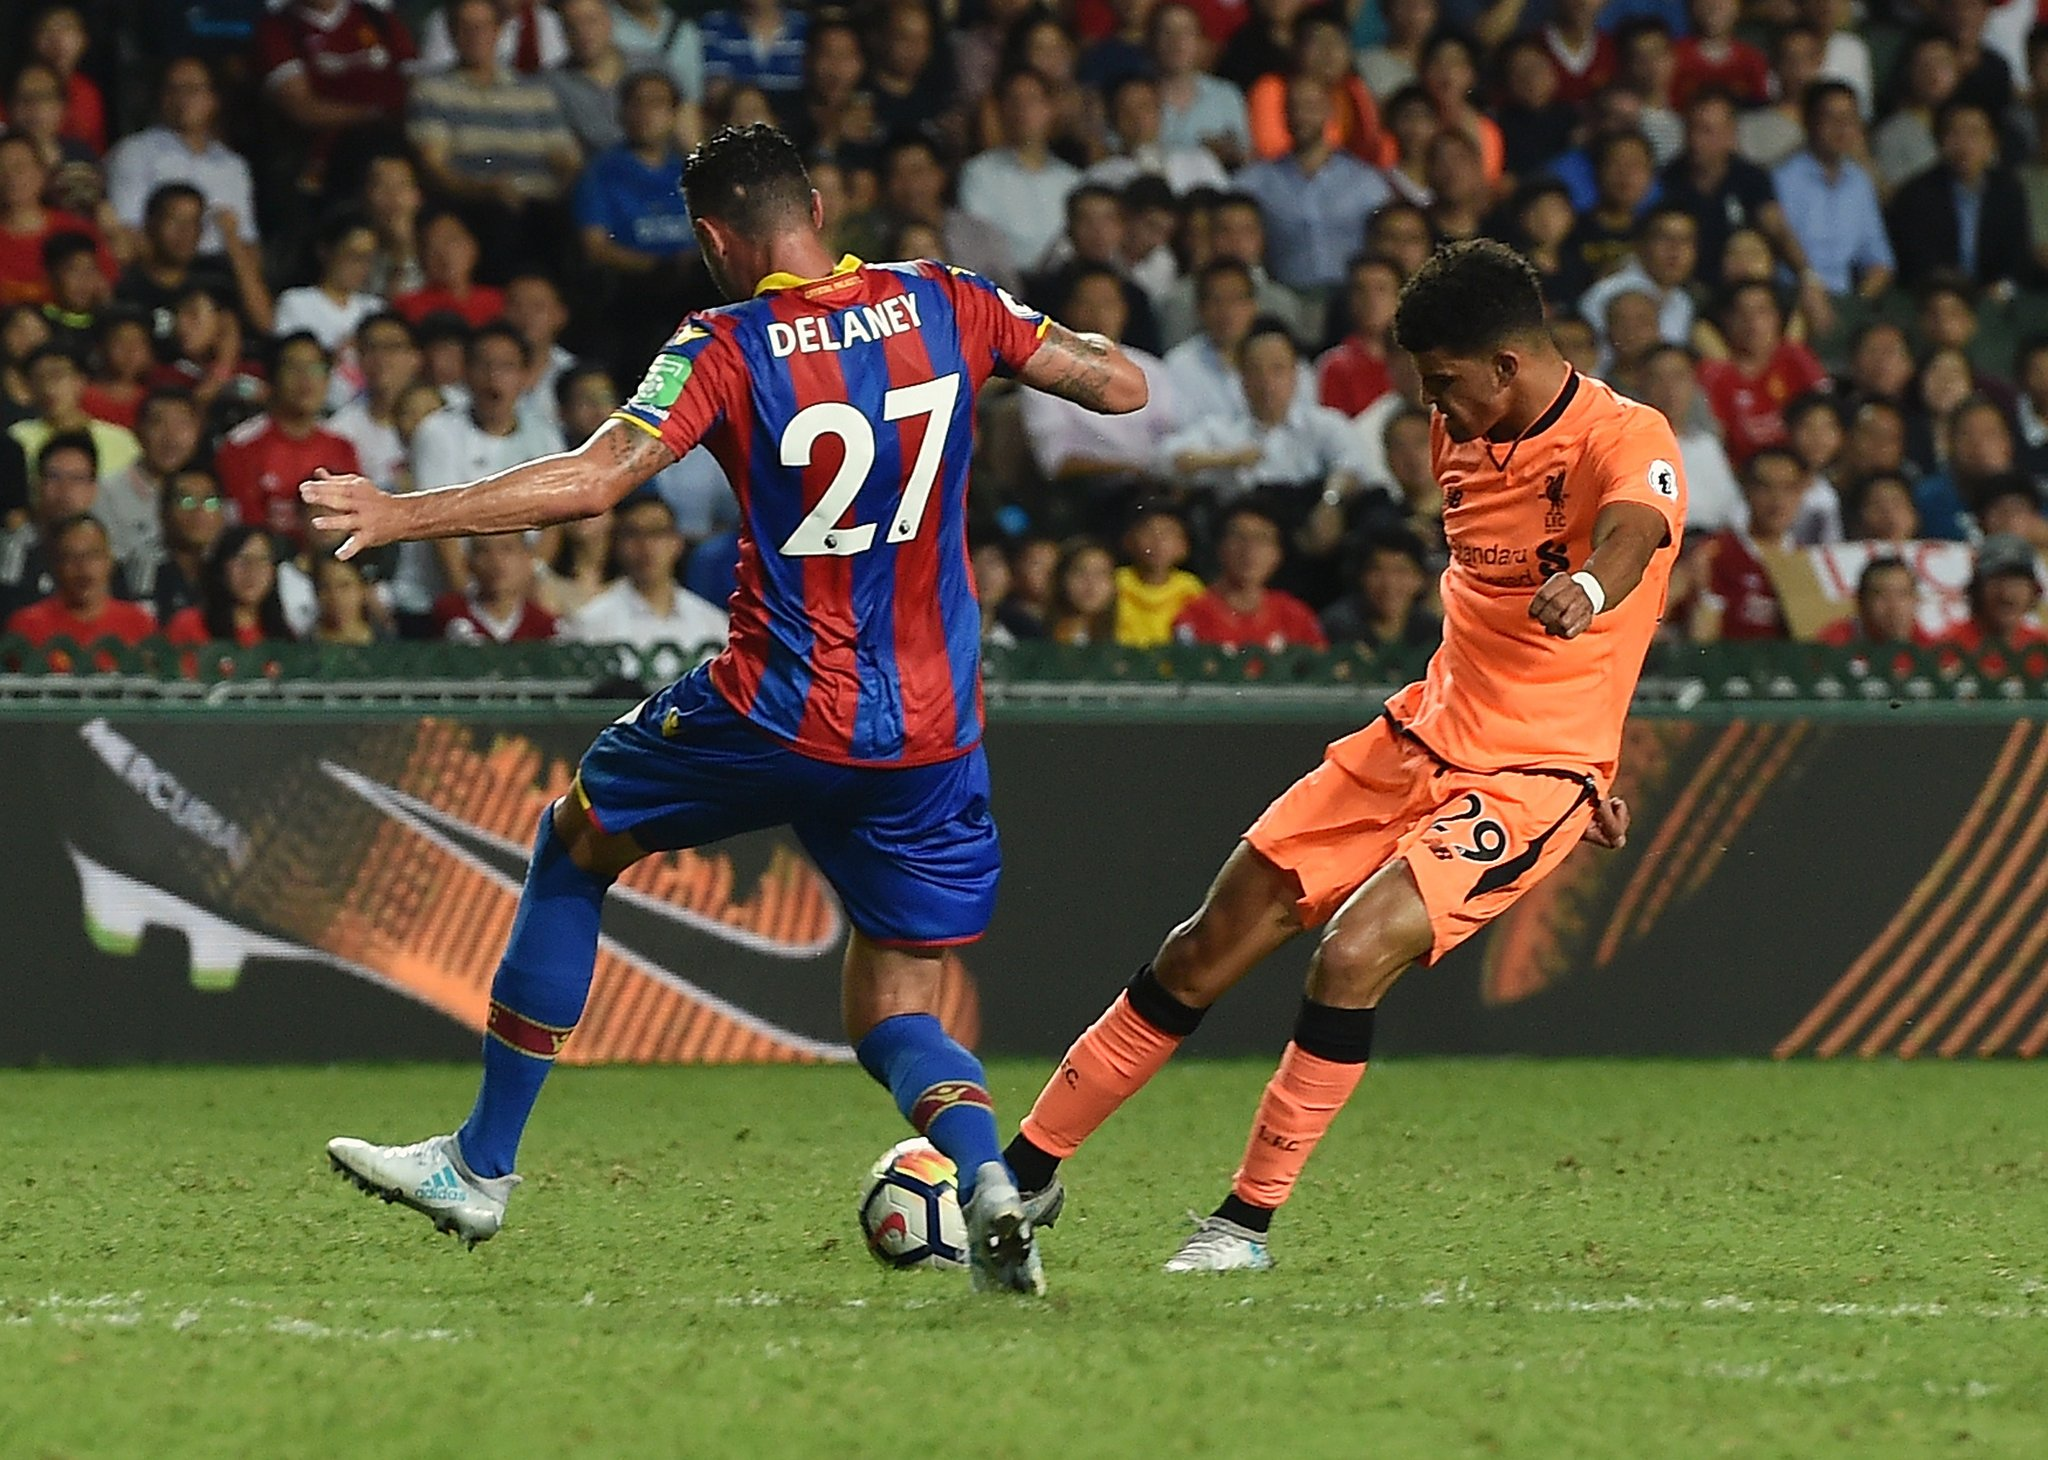 SolankeHopes To Make Liverpool History After Debut Goal